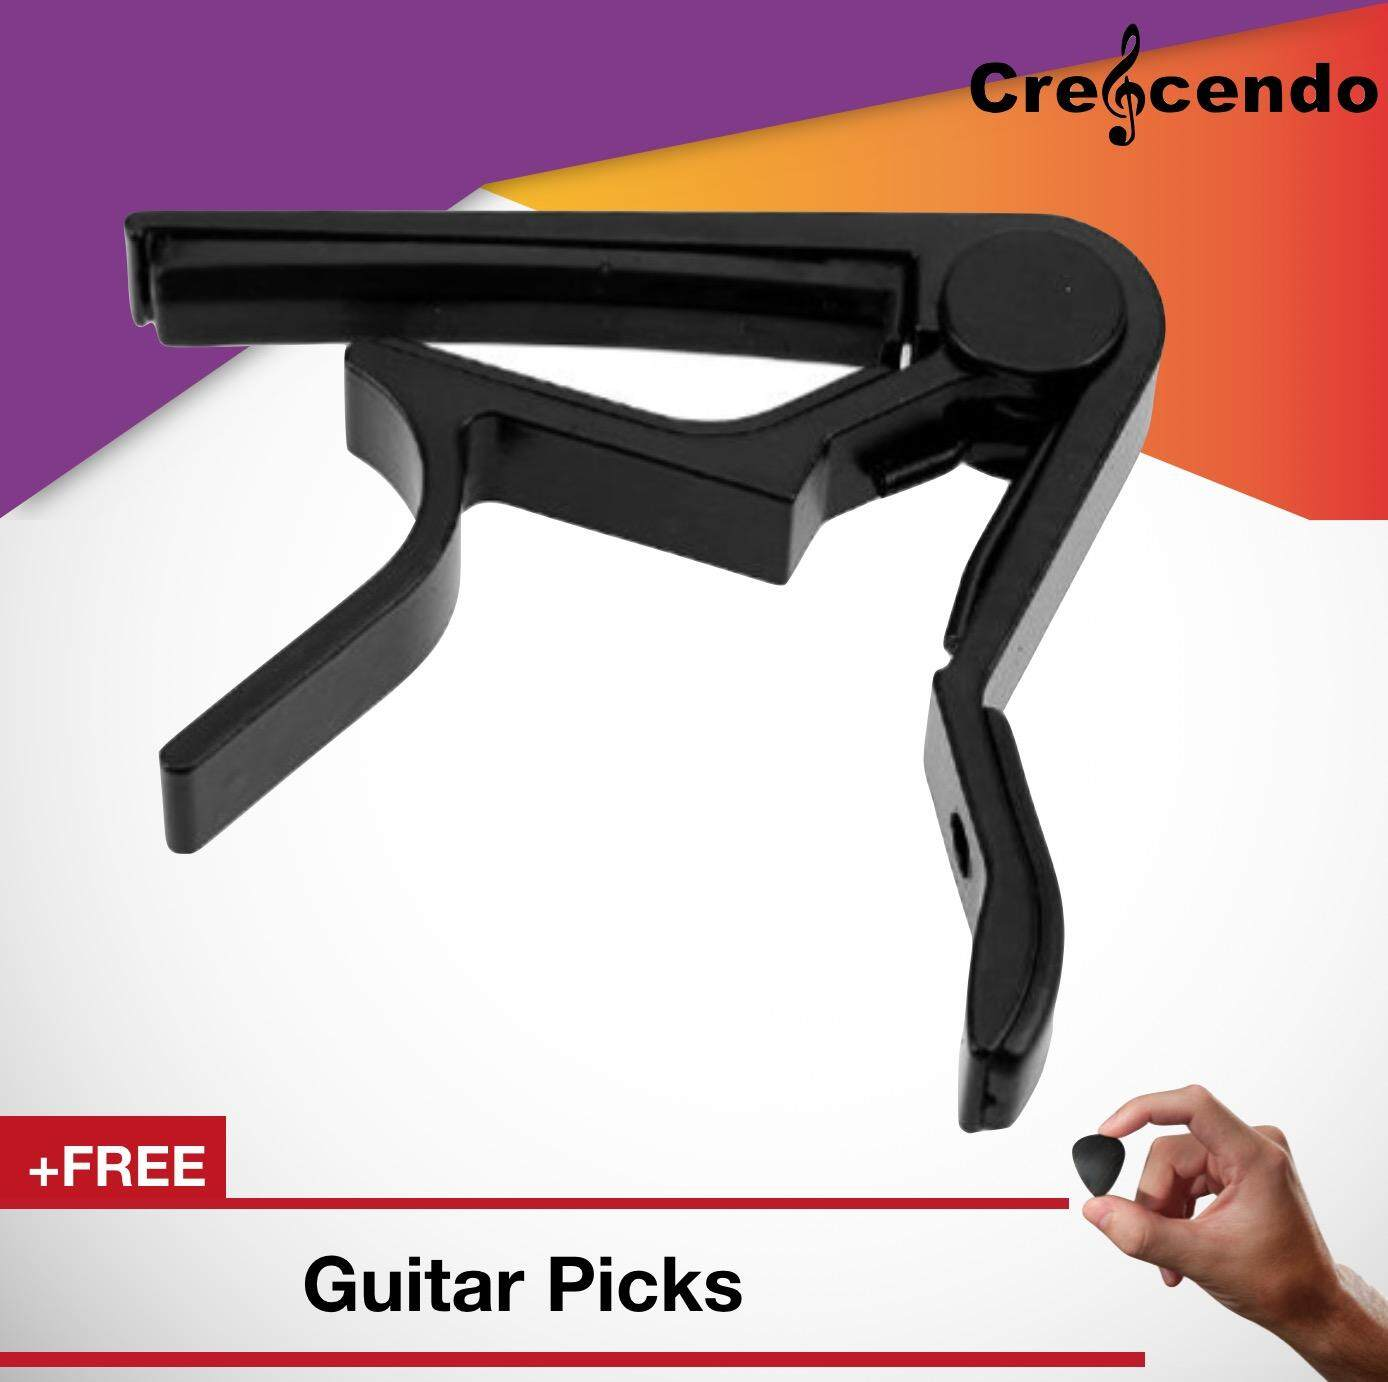 Guitar Parts & Accessories 6 String Fingerboard Pocket Acoustic Guitar Practice Tool 6 Fret Chord Trainer Musical Instruments Musical Instruments Guitar Parts & Accessories